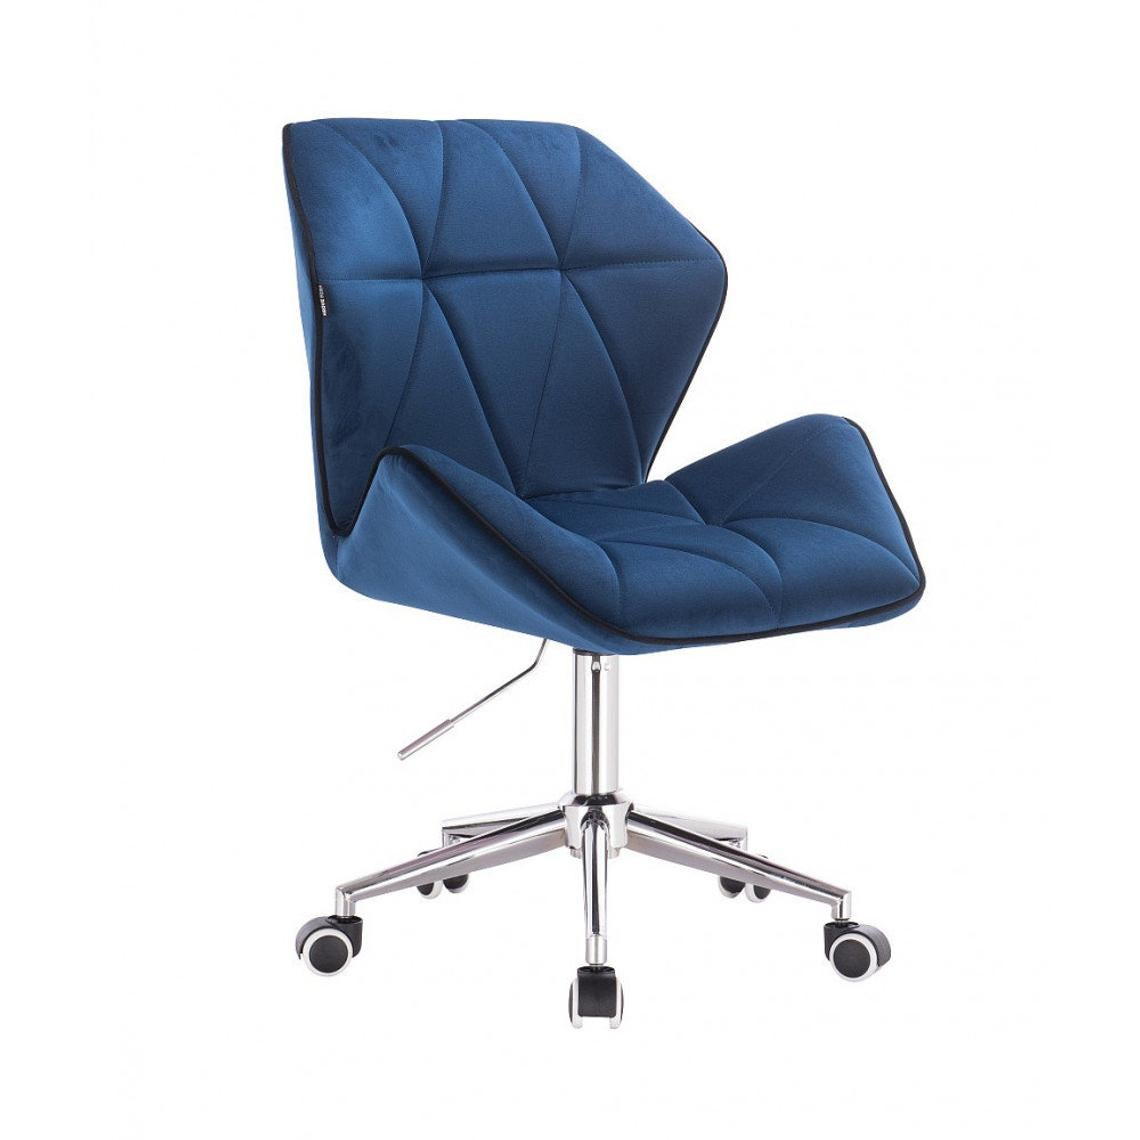 Best Office Chairs To Buy For Your Home Desk Reviewed